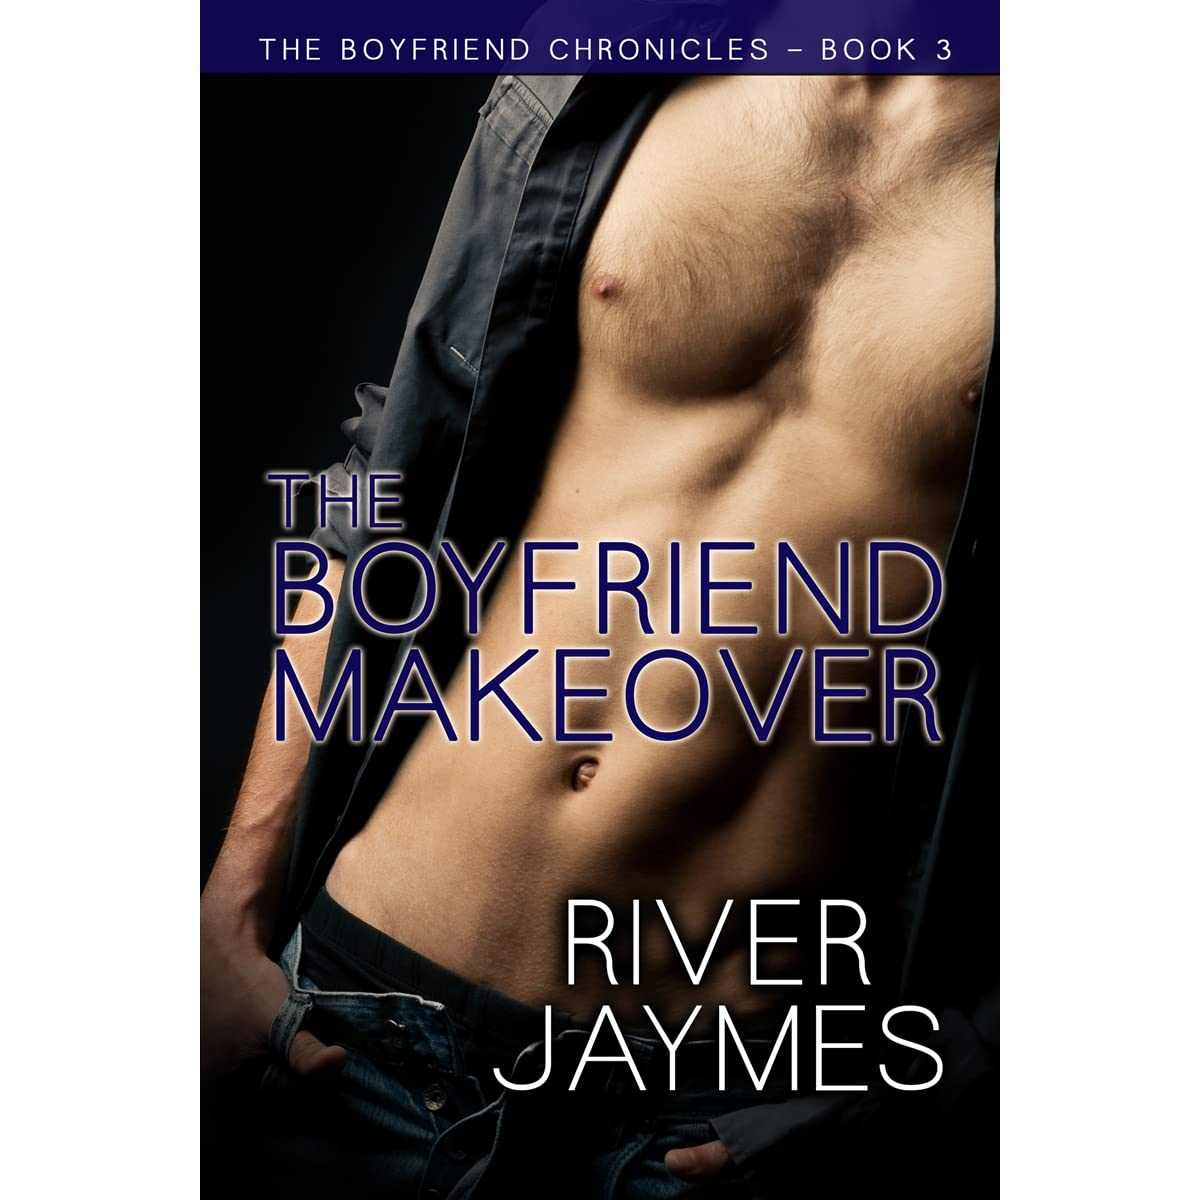 The Boyfriend Makeover (the Boyfriend Chronicles, #3) By River Jaymes €�  Reviews, Discussion, Bookclubs, Lists